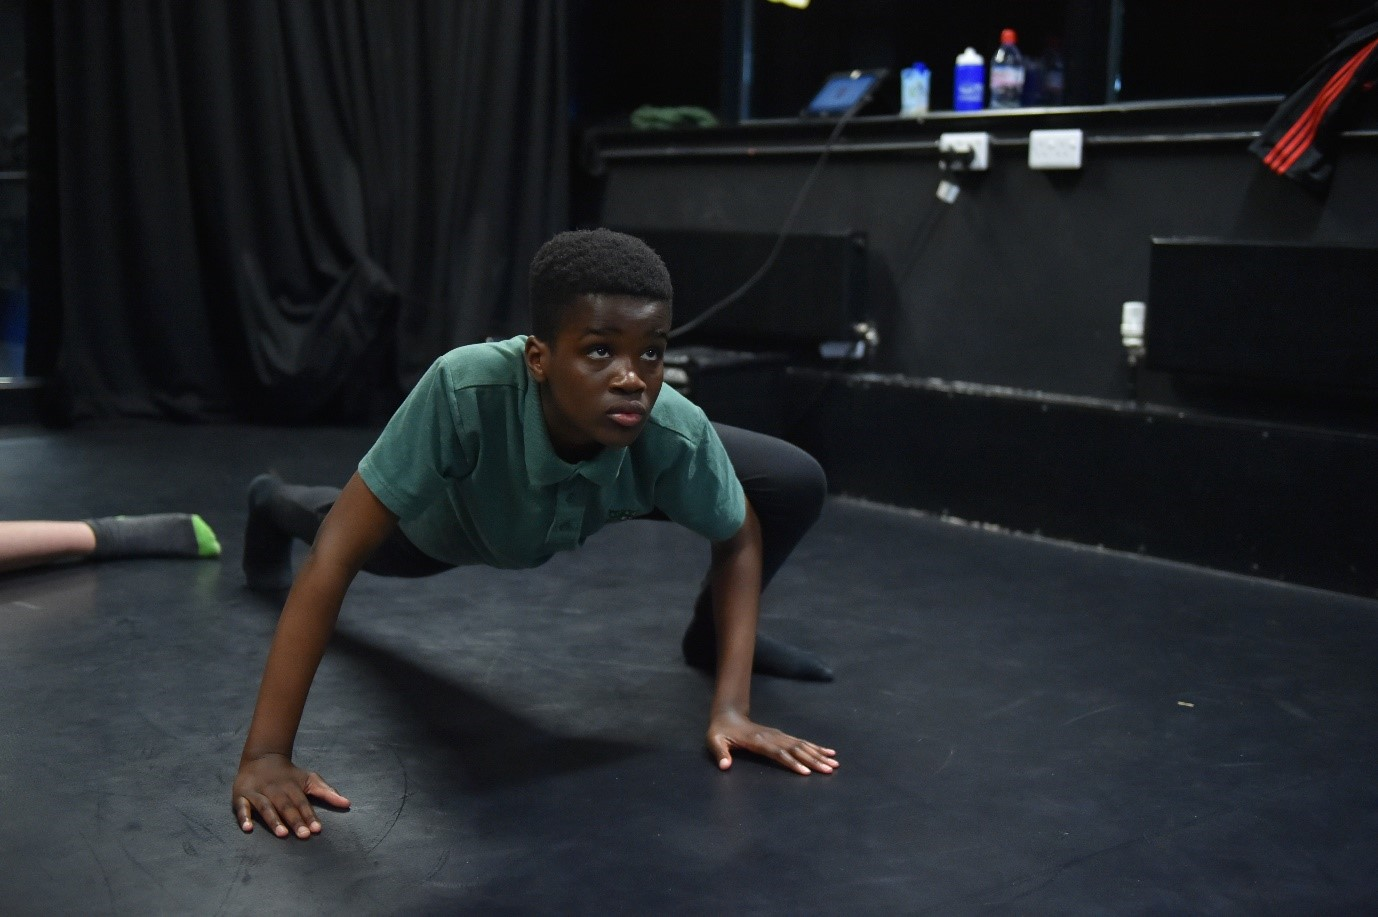 I spend a lot of time during the week managing our Schools Partnership Scheme. We deliver regular activity in a range of schools, colleges and universities across West Yorkshire supporting the national curriculum in dance, after-school activity, cross-curricular work or as behaviour management initiatives. It is really valuable for me to go out and make visits in schools, to see the work in person and to be reminded of the impact of all the planning and coordinating behind the scenes!